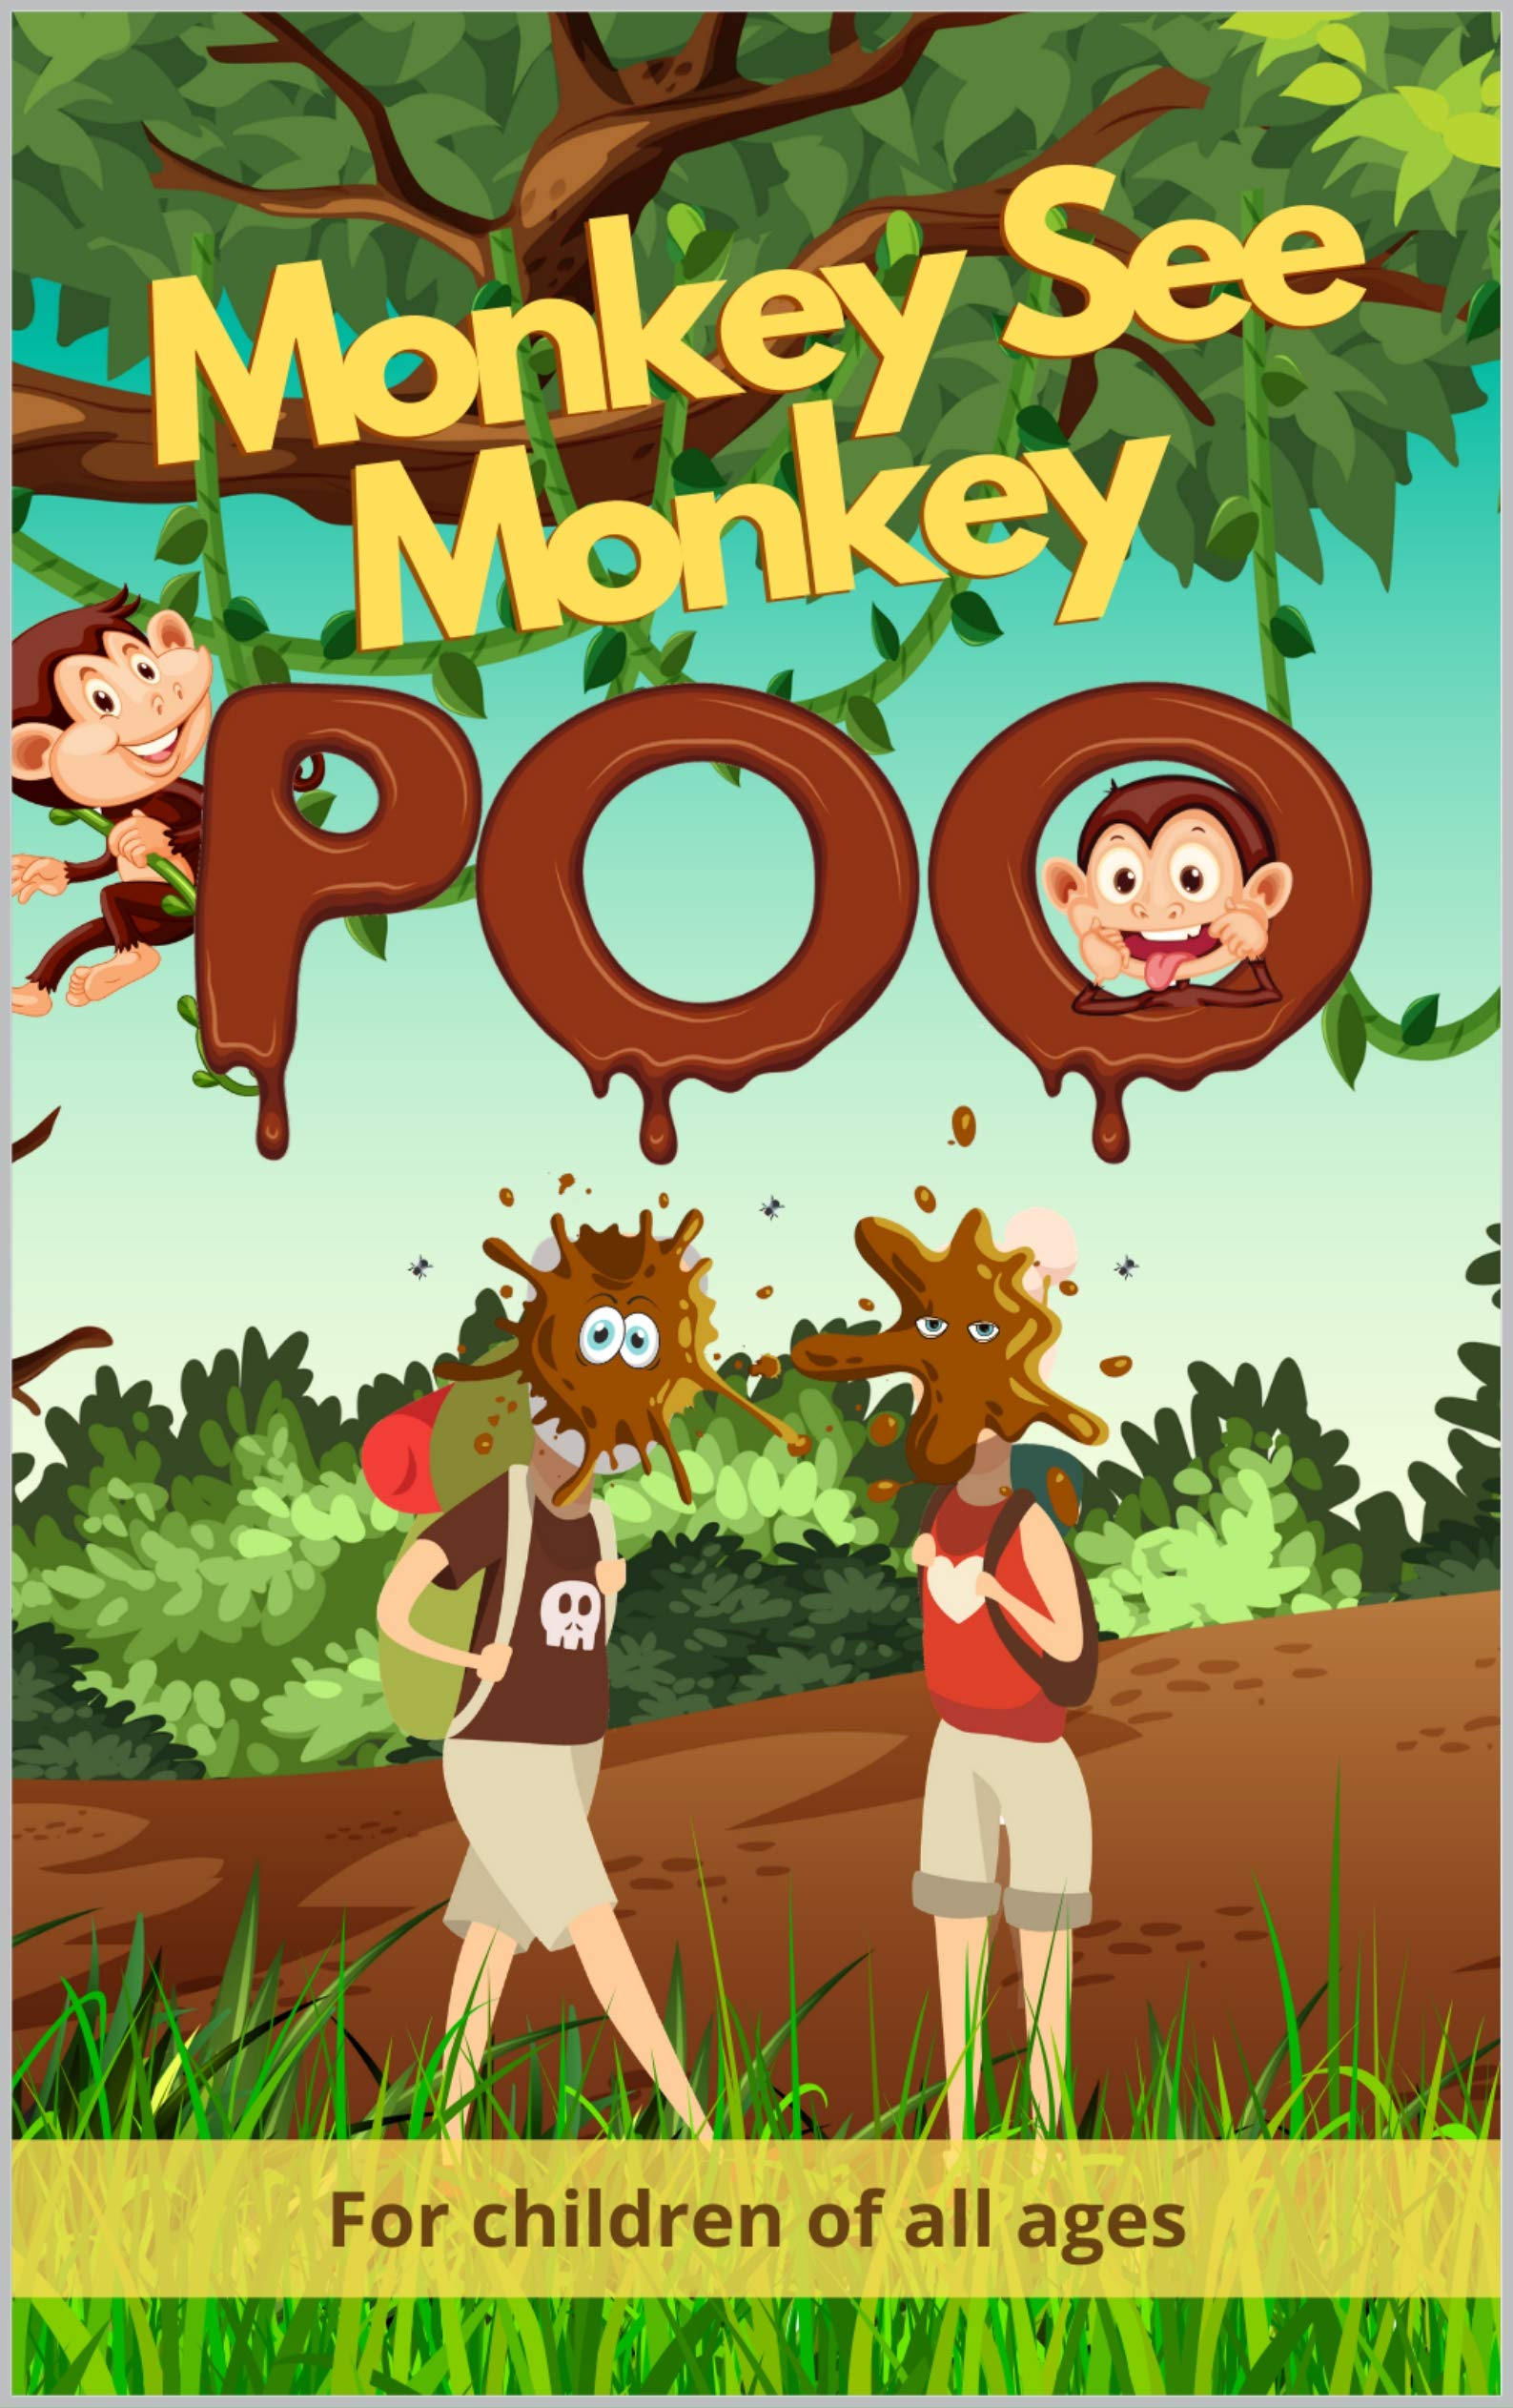 Monkey See Monkey Poo: Follow a mischievous troop of poo throwing monkeys in this beautifully illustrated children's picture book